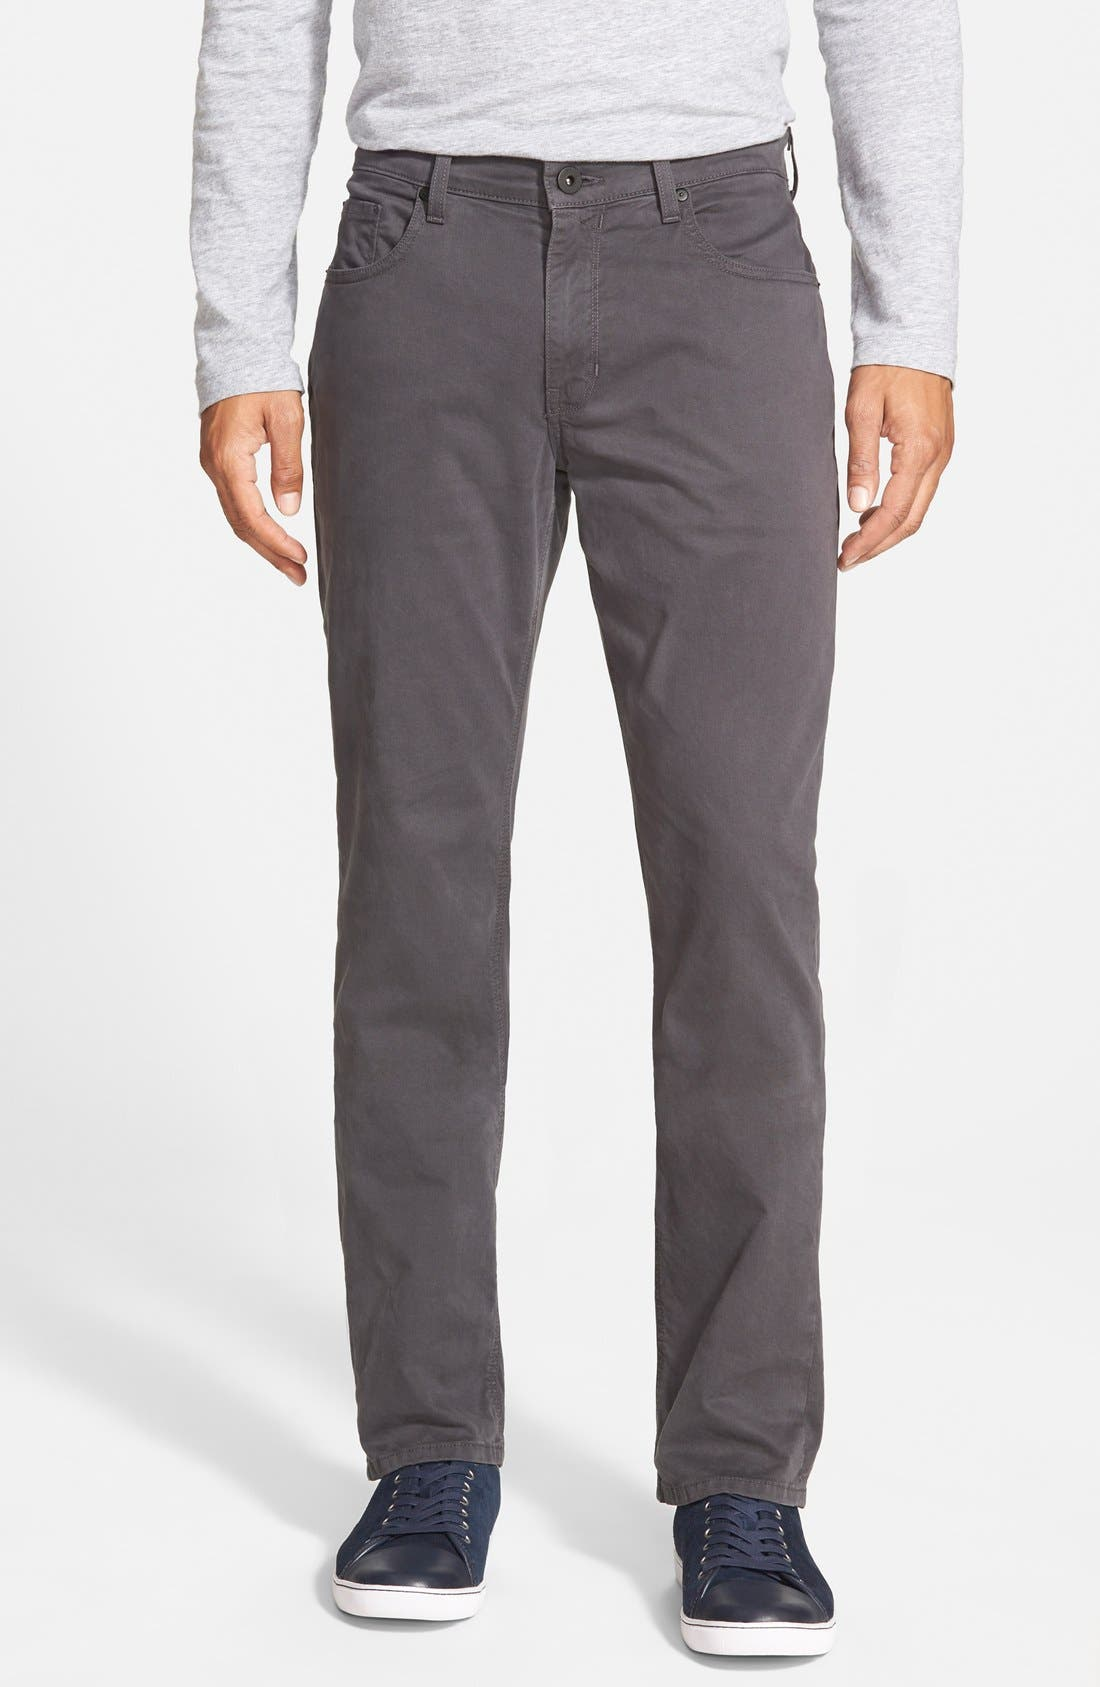 Normandie Slim Straight Leg Twill Pants,                             Main thumbnail 1, color,                             SOOT DARK GREY